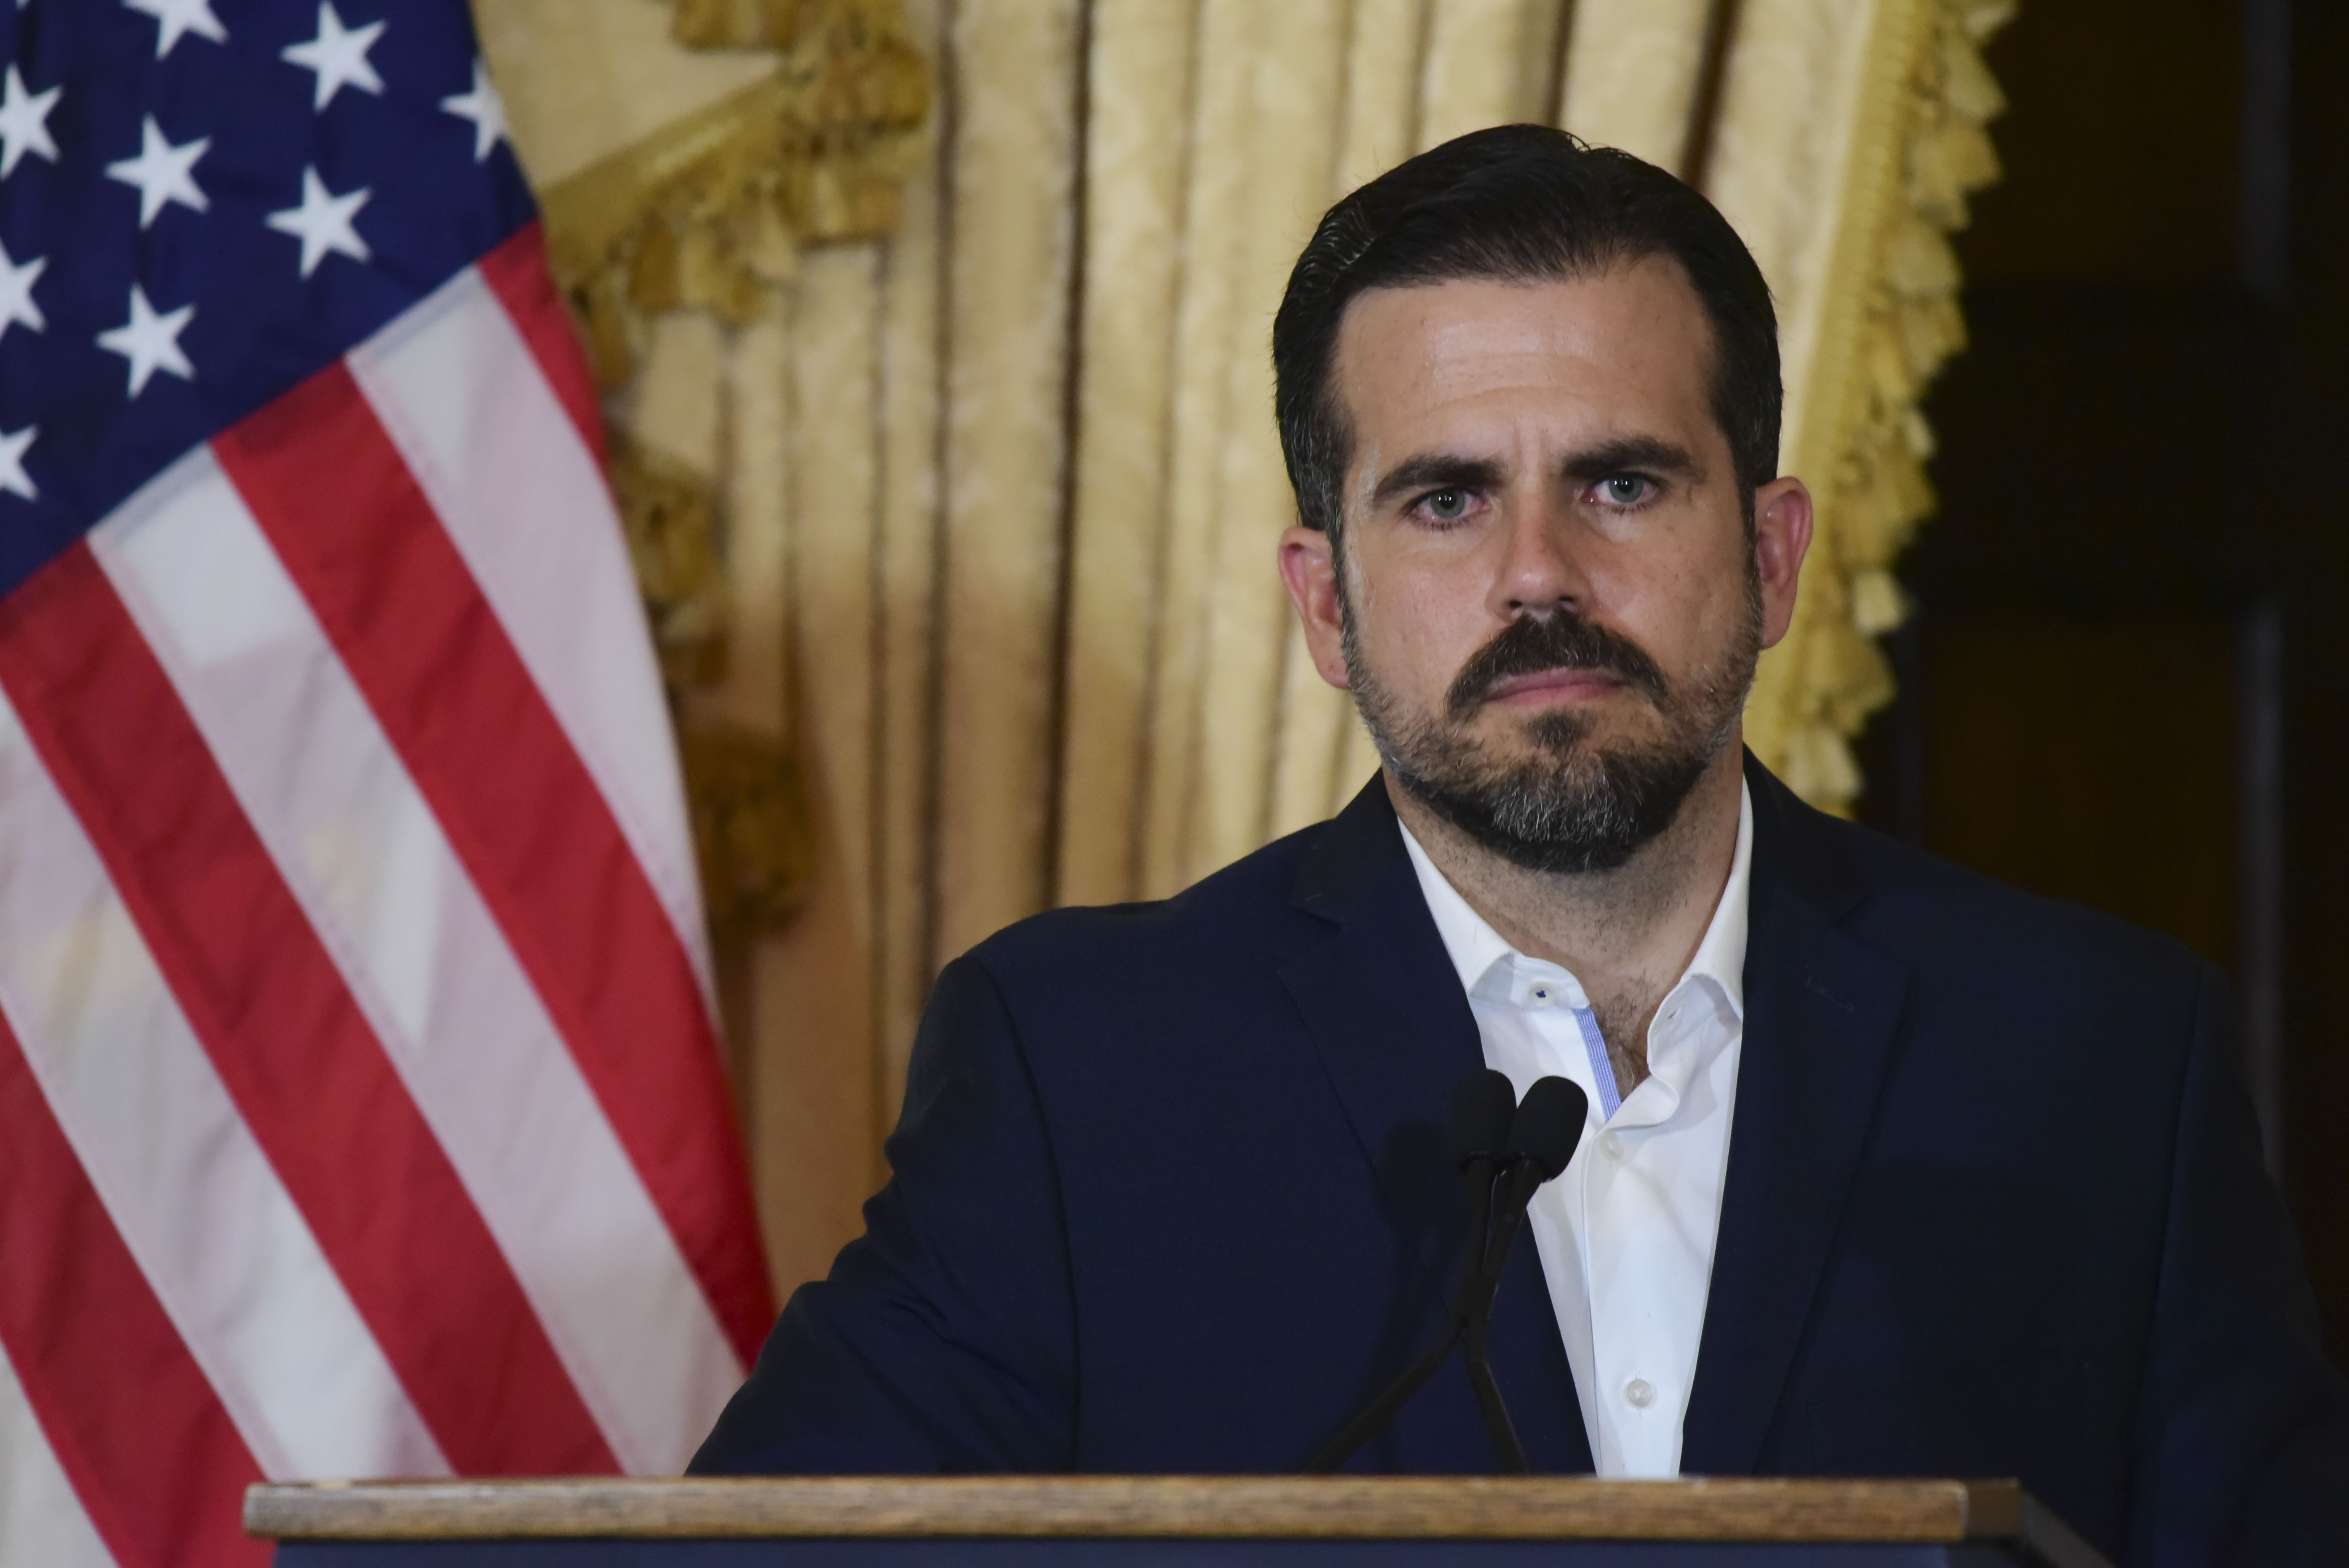 Puerto Rico governor Ricardo Rossello holds a press conference, almost two days after federal authorities arrested the island's former secretary of education and five other people on charges of steering federal money to unqualified, politically connected contractors, in San Juan, Puerto Rico on July 11, 2019.